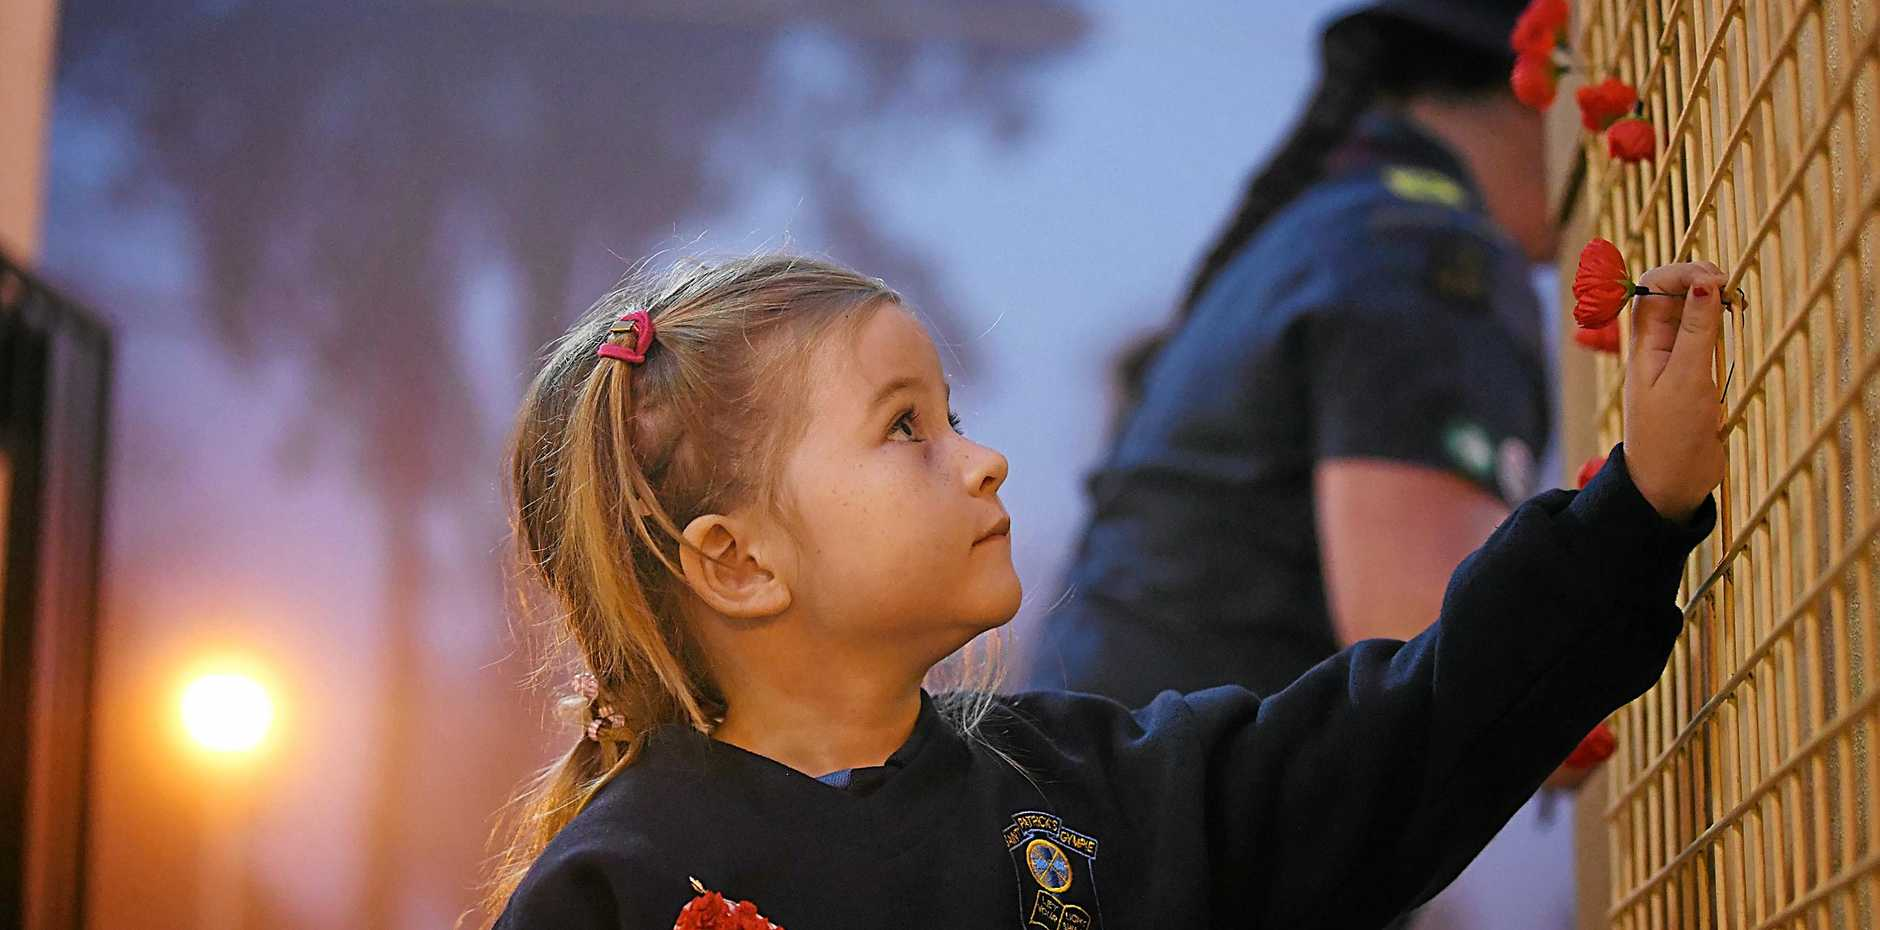 Emily Bonney pays her respects at Gympie's ANZAC Day dawn service, 2018.